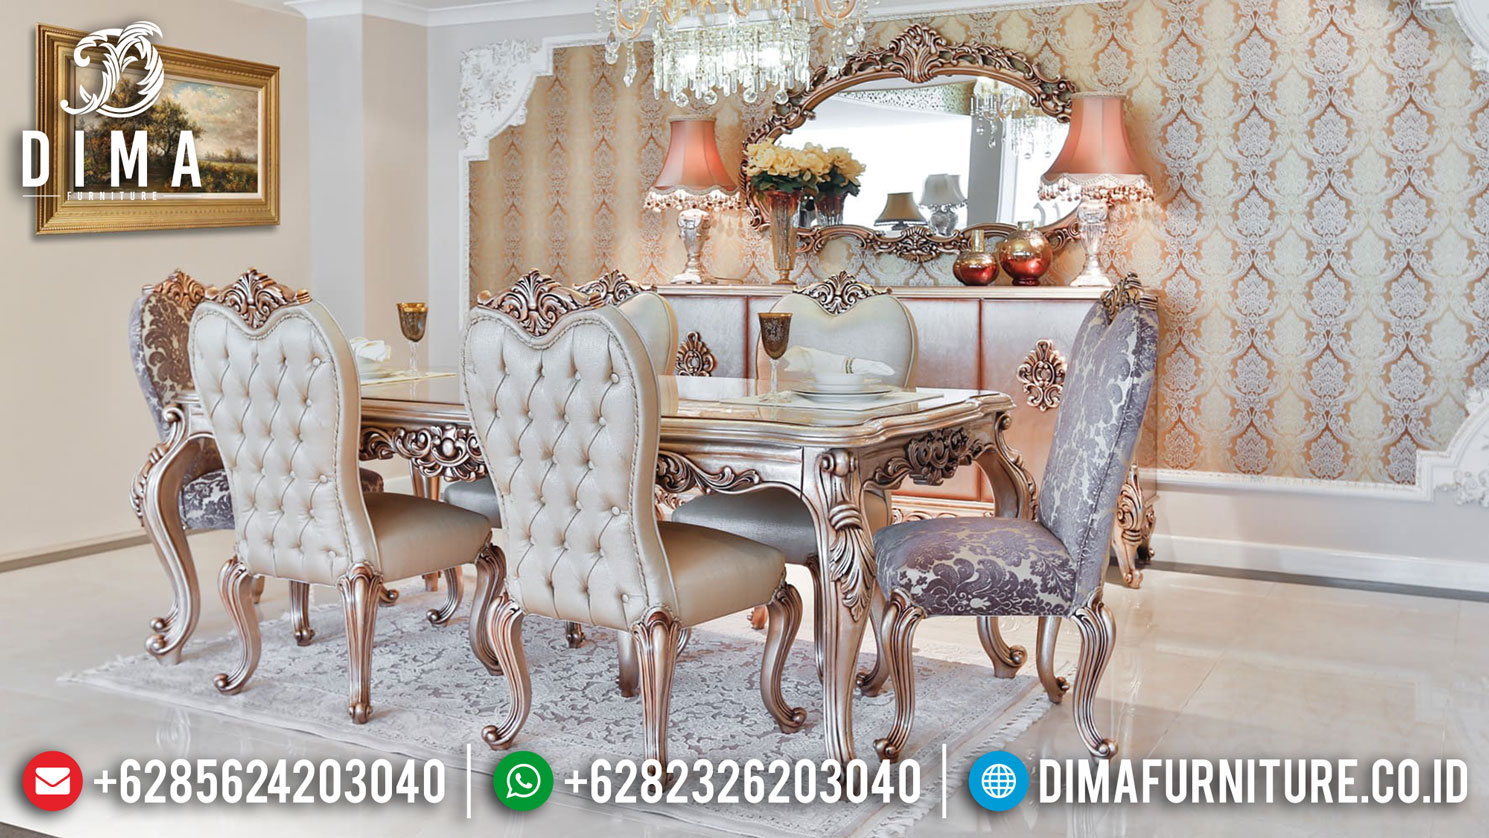 Jual Meja Makan Mewah Ukiran Rose Ruby Luxury Furniture Jepara Update DF-1412